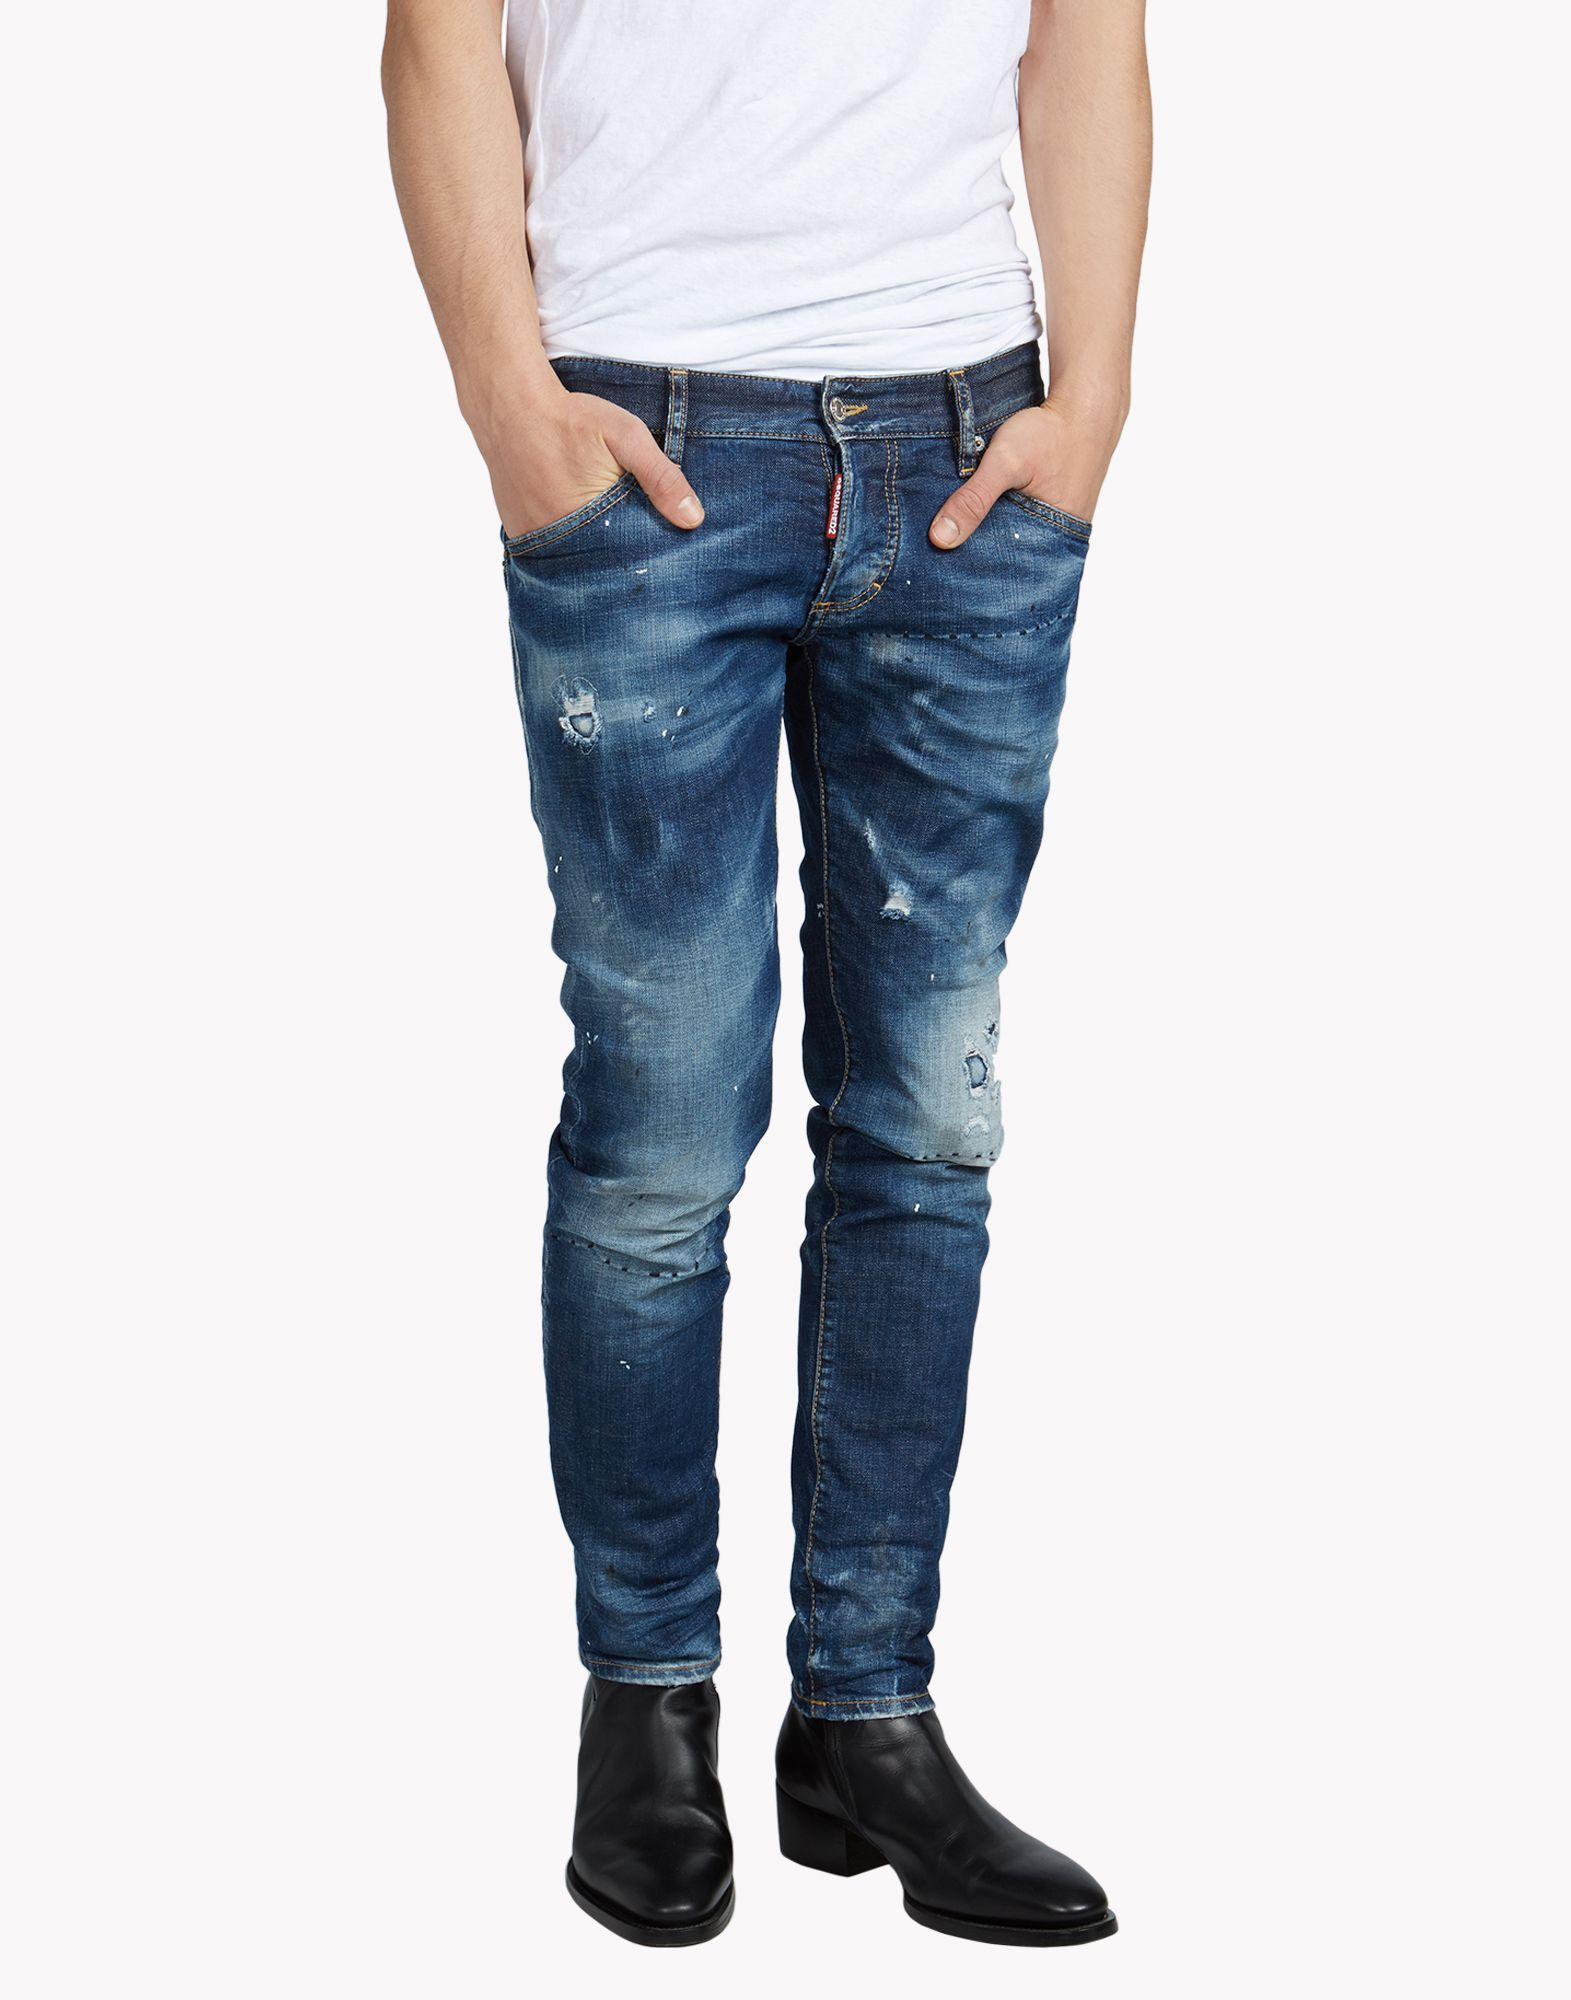 52949cdc2 Clement Jeans - Jeans Men - Dsquared2 Official Online Store